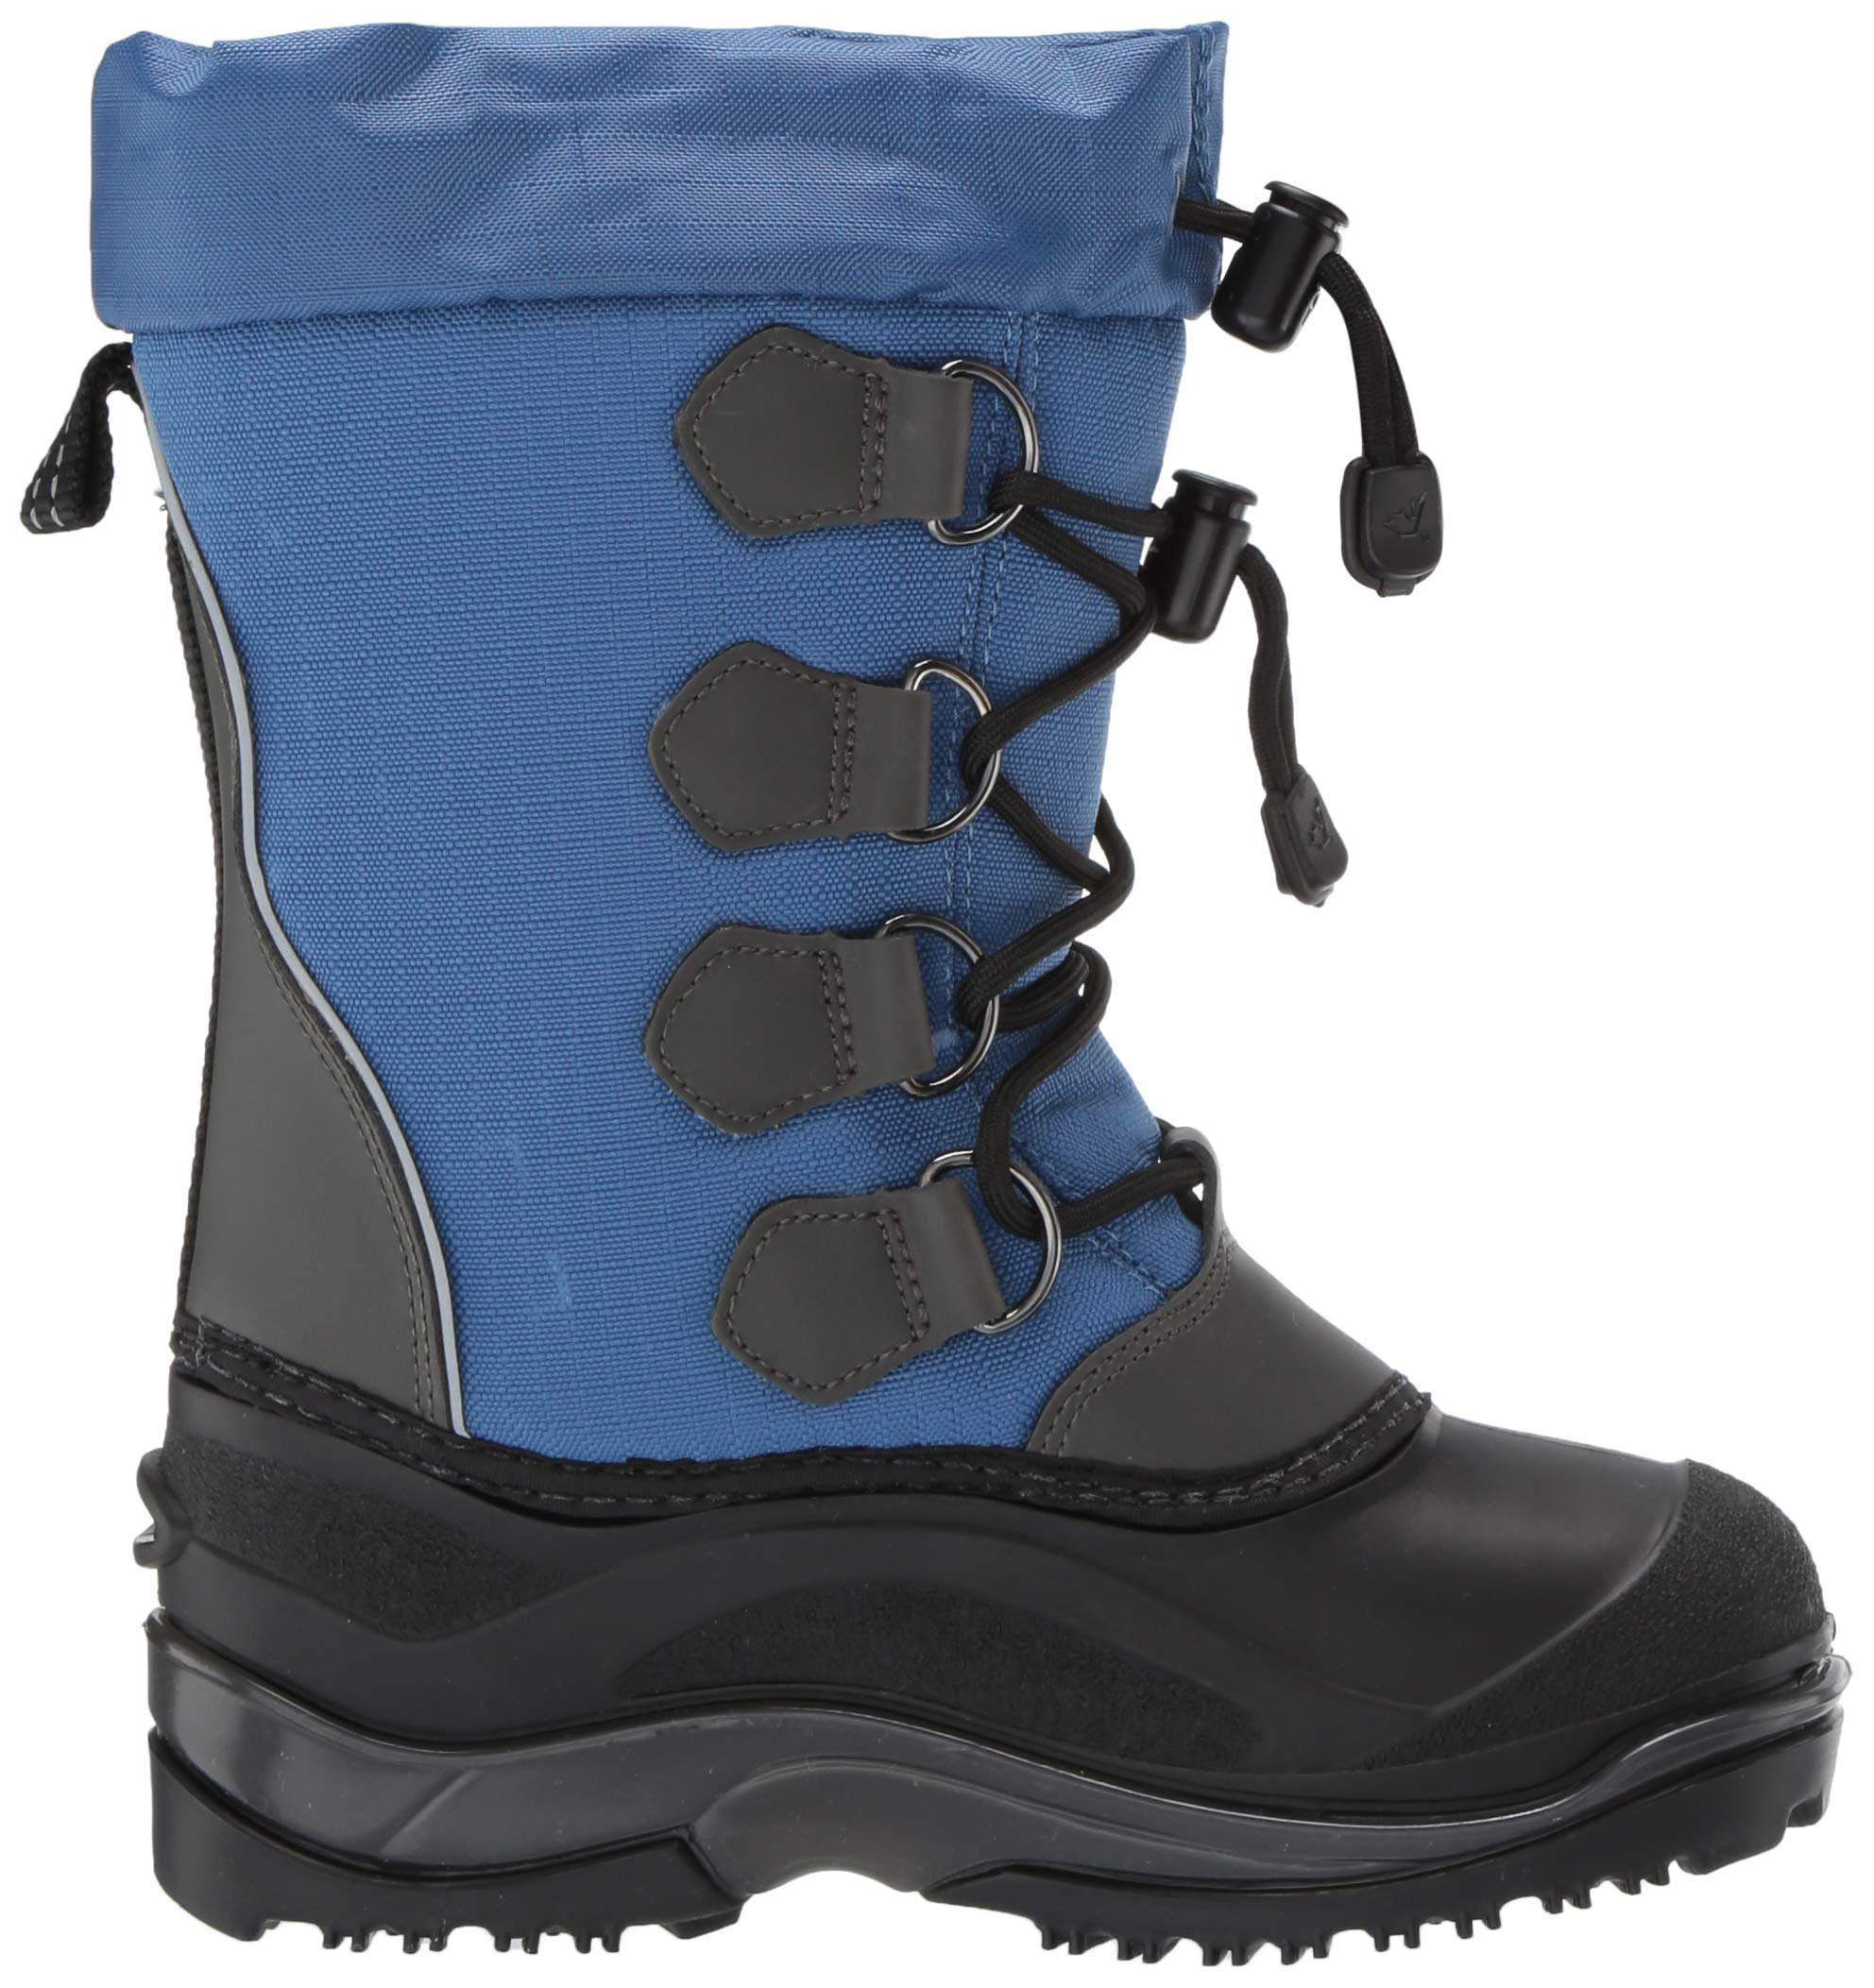 Baffin Unisex SNOWPACK Snow Boot, Blue, 2 Youth US Little Kid by Baffin (Image #7)